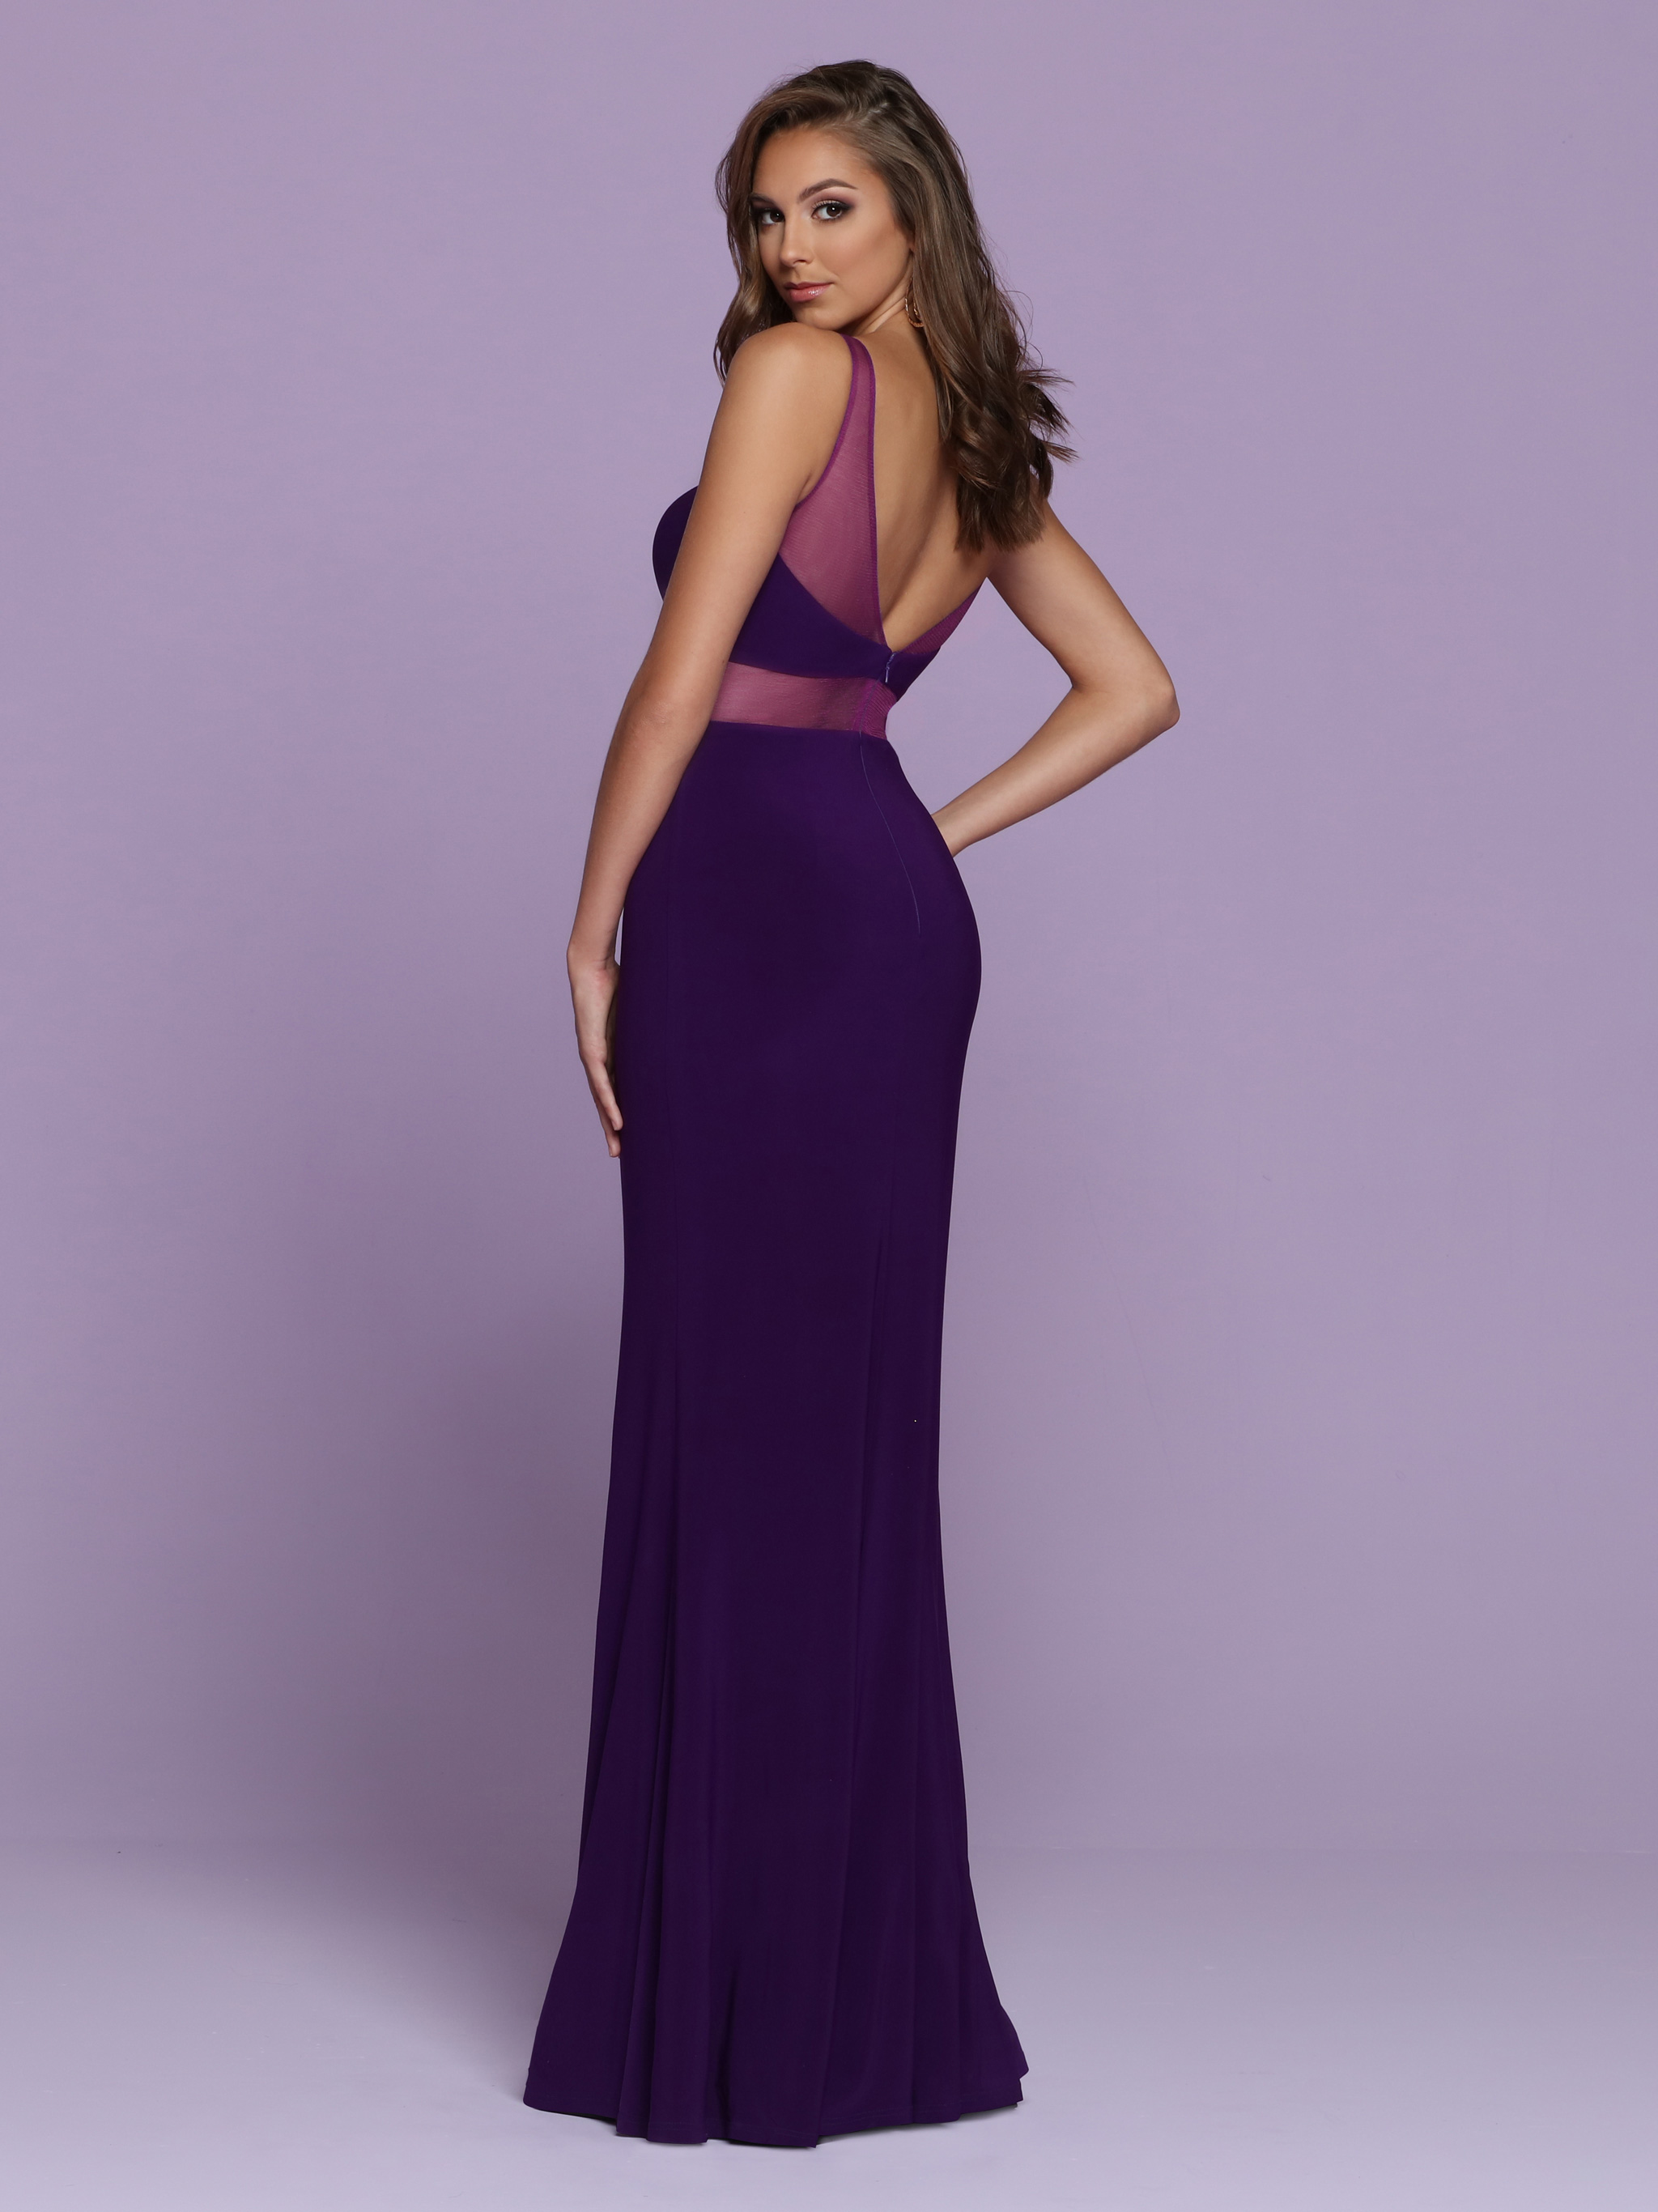 Image showing back view of style #72111